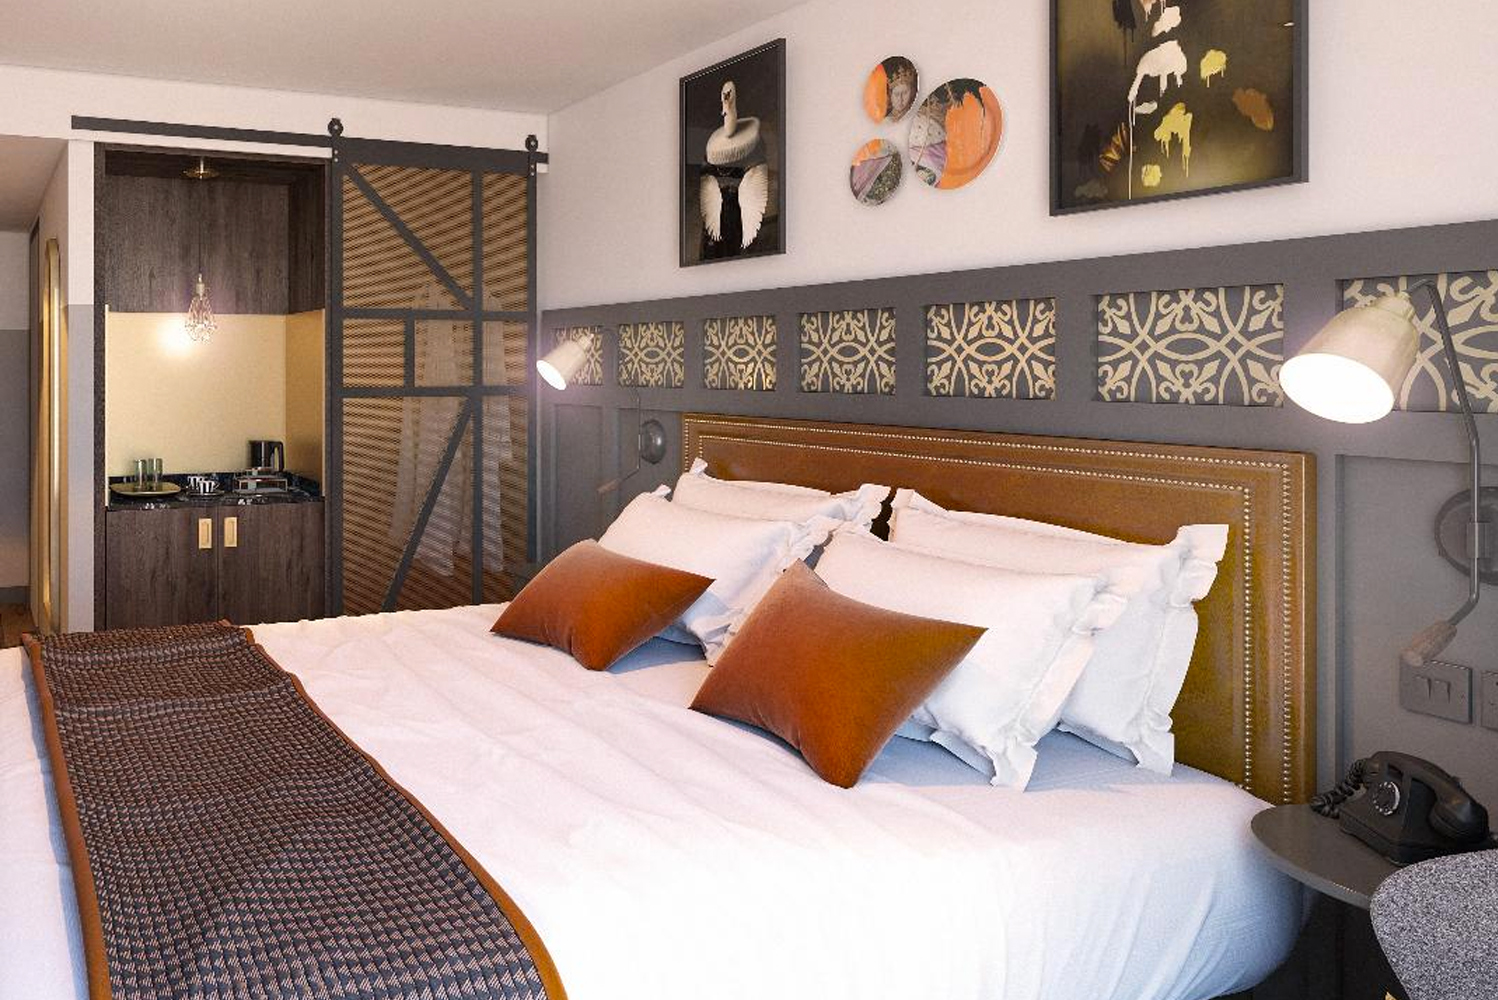 Hotel Indigo is scheduled to open a new boutique hotel, Hotel Indigo Chester, later this year under a franchise agreement with Castlebridge Hospitality.